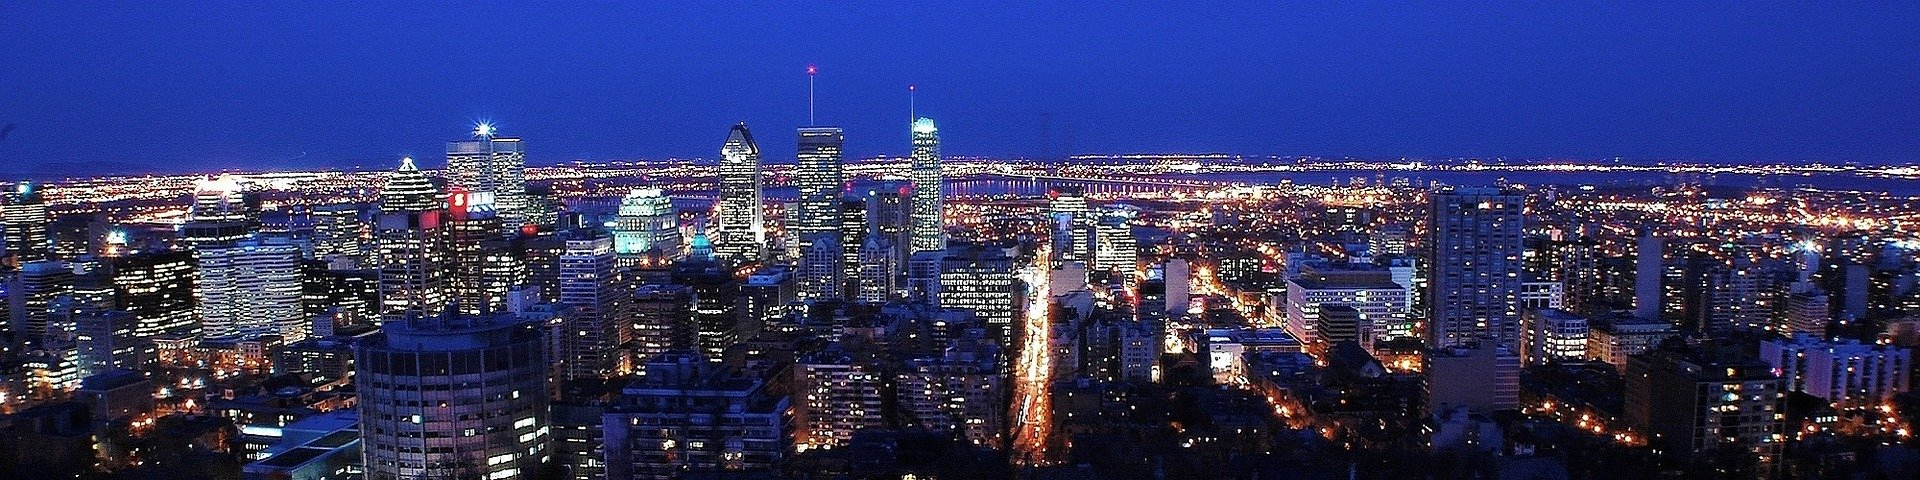 Montreal Mass Transit System - Our First Customer for Integrated Fleet Fuel Management